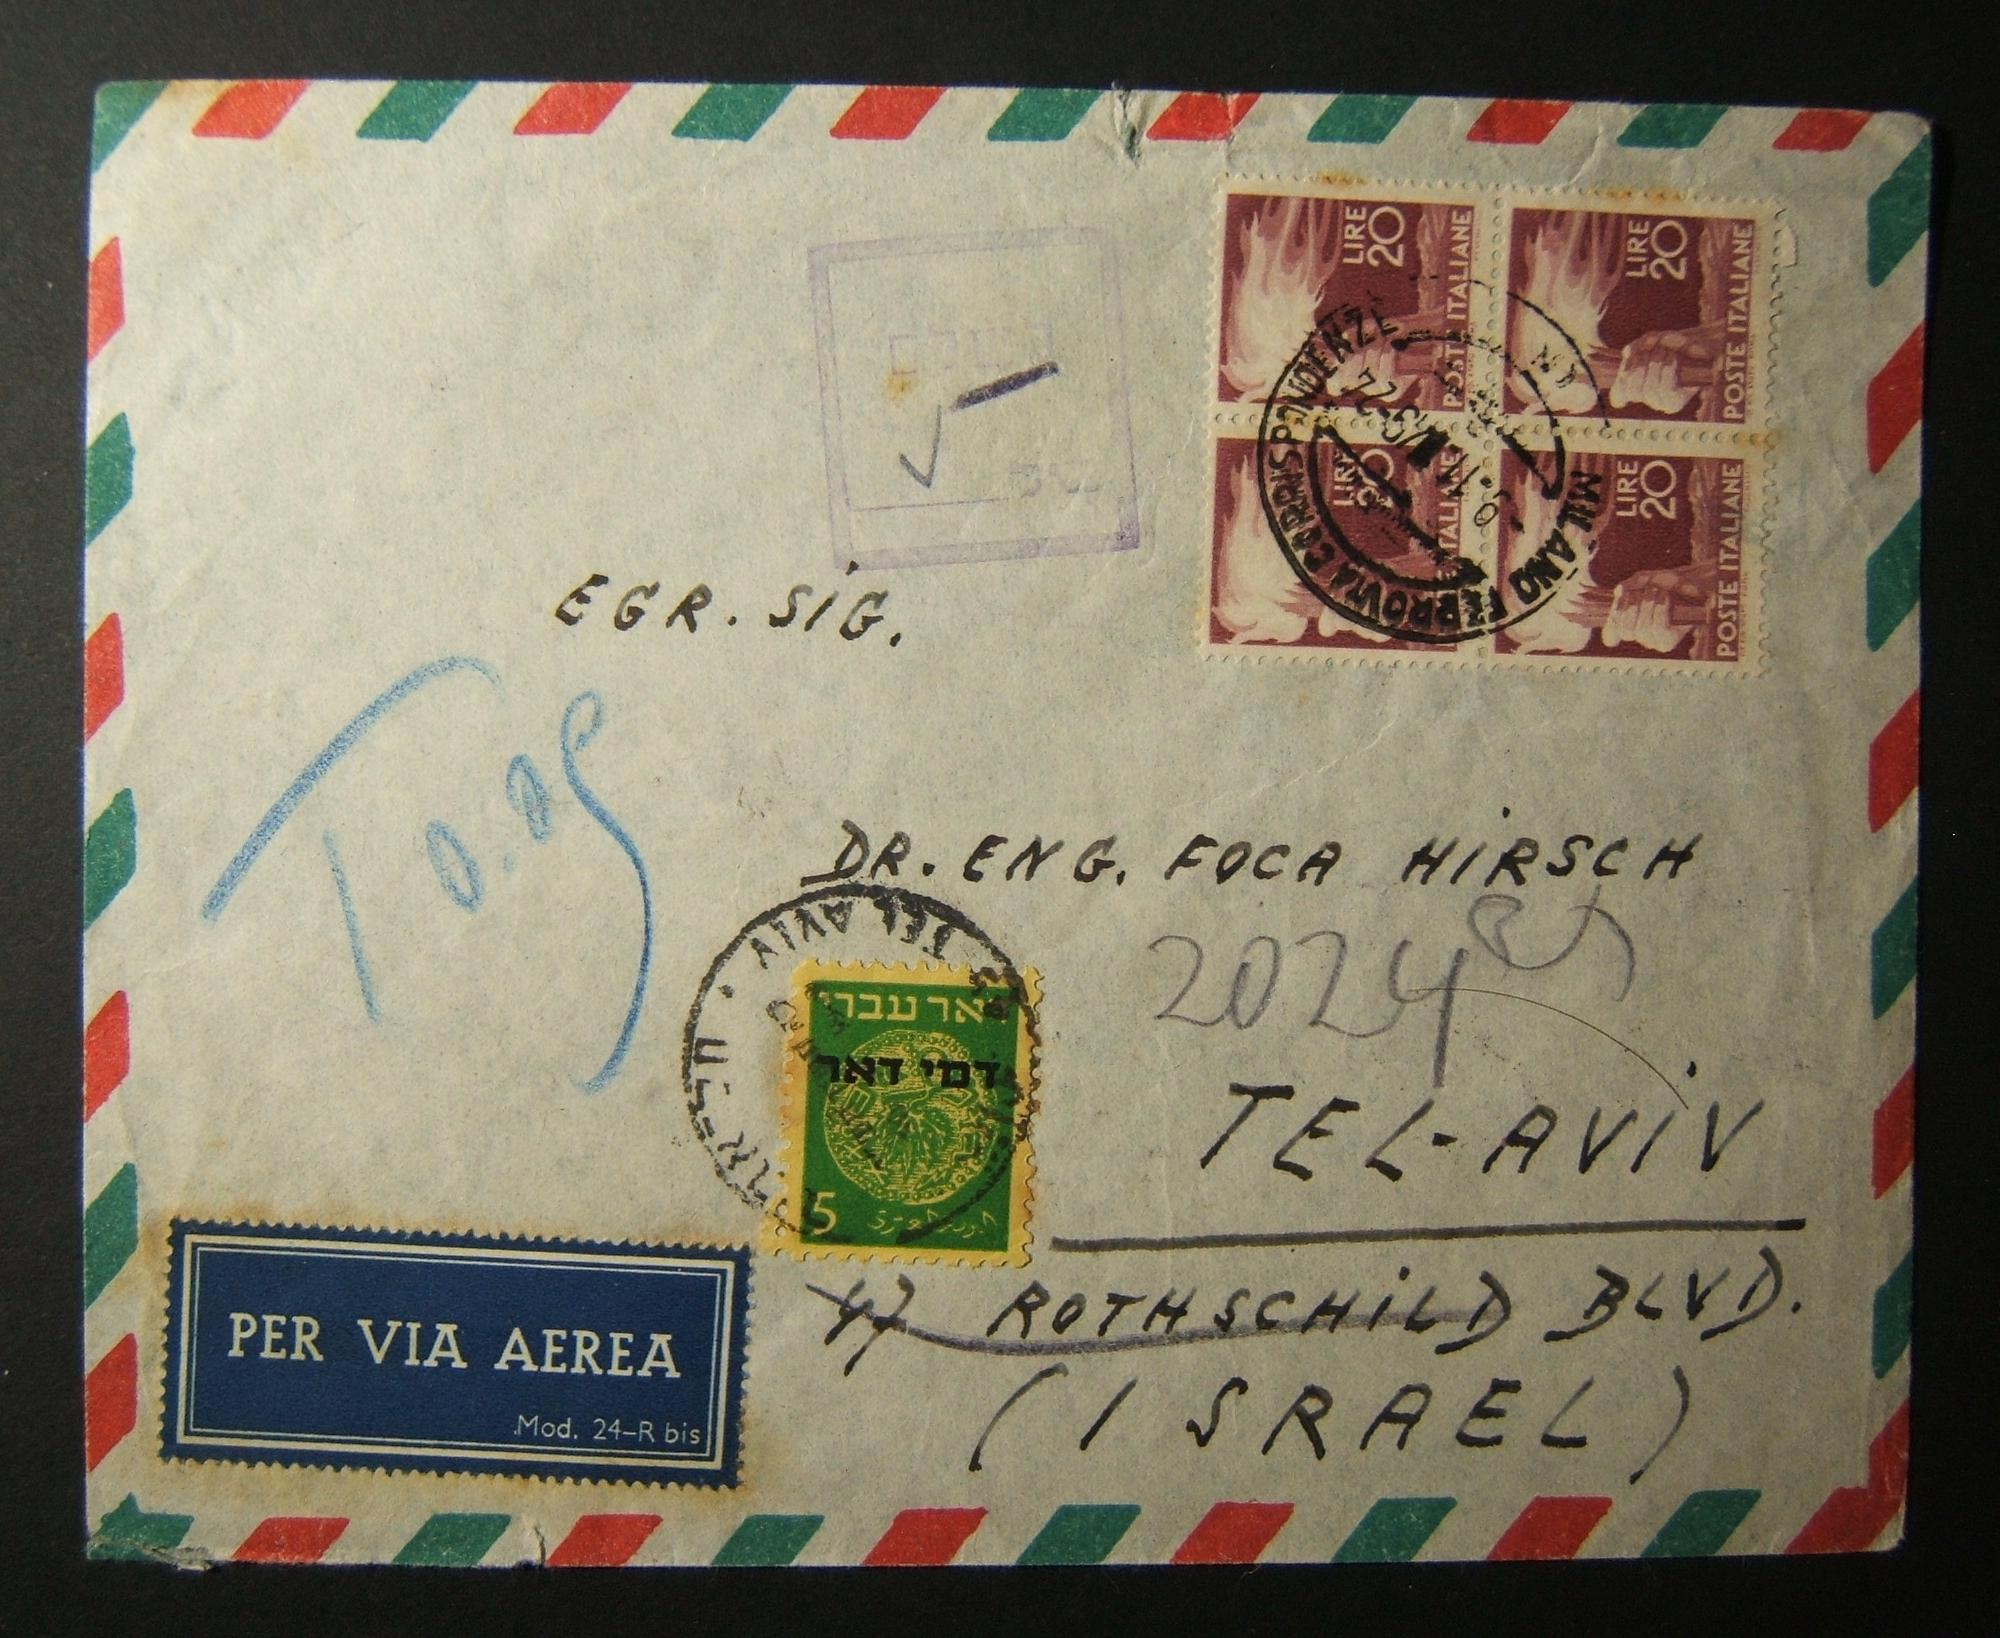 1949 incoming Italian taxed mail: 9-11-49 airmail comm. cv ex MILANO to TLV underfranked at 80L and taxed 5Pr in Israel, marked by scarce rectangular cachet, paid using BaPD2 frank